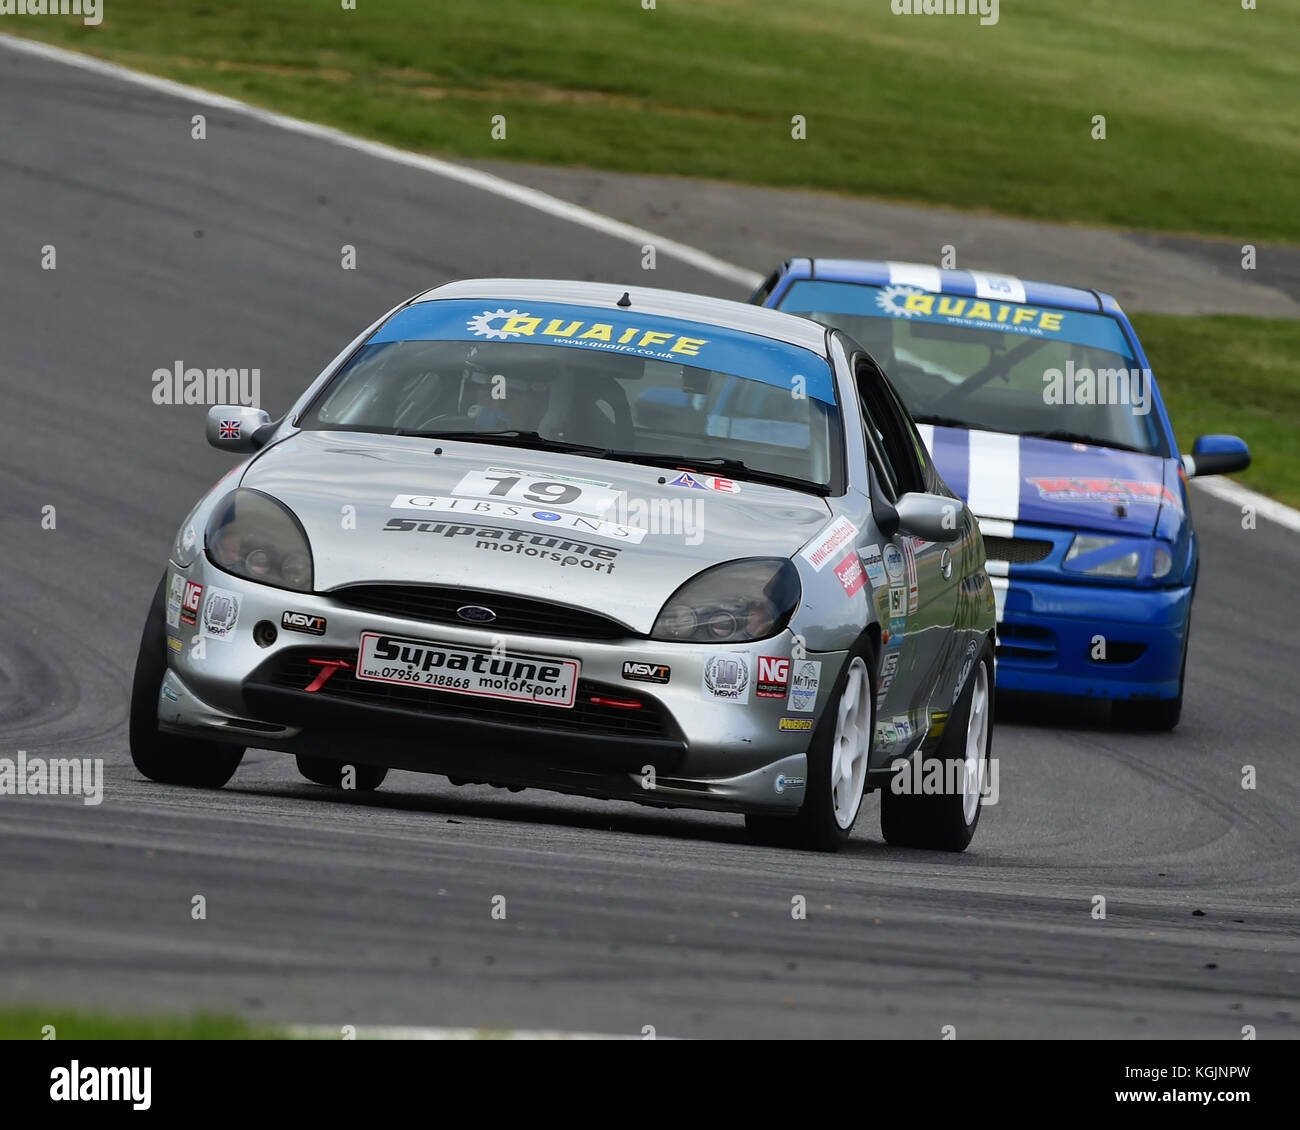 Gideon September, Ford Puma, Quaife, Cannon, Tin Tops Championship, Deutsche Fest, Brands Hatch, August, 2017, Autosport, - Stock Image